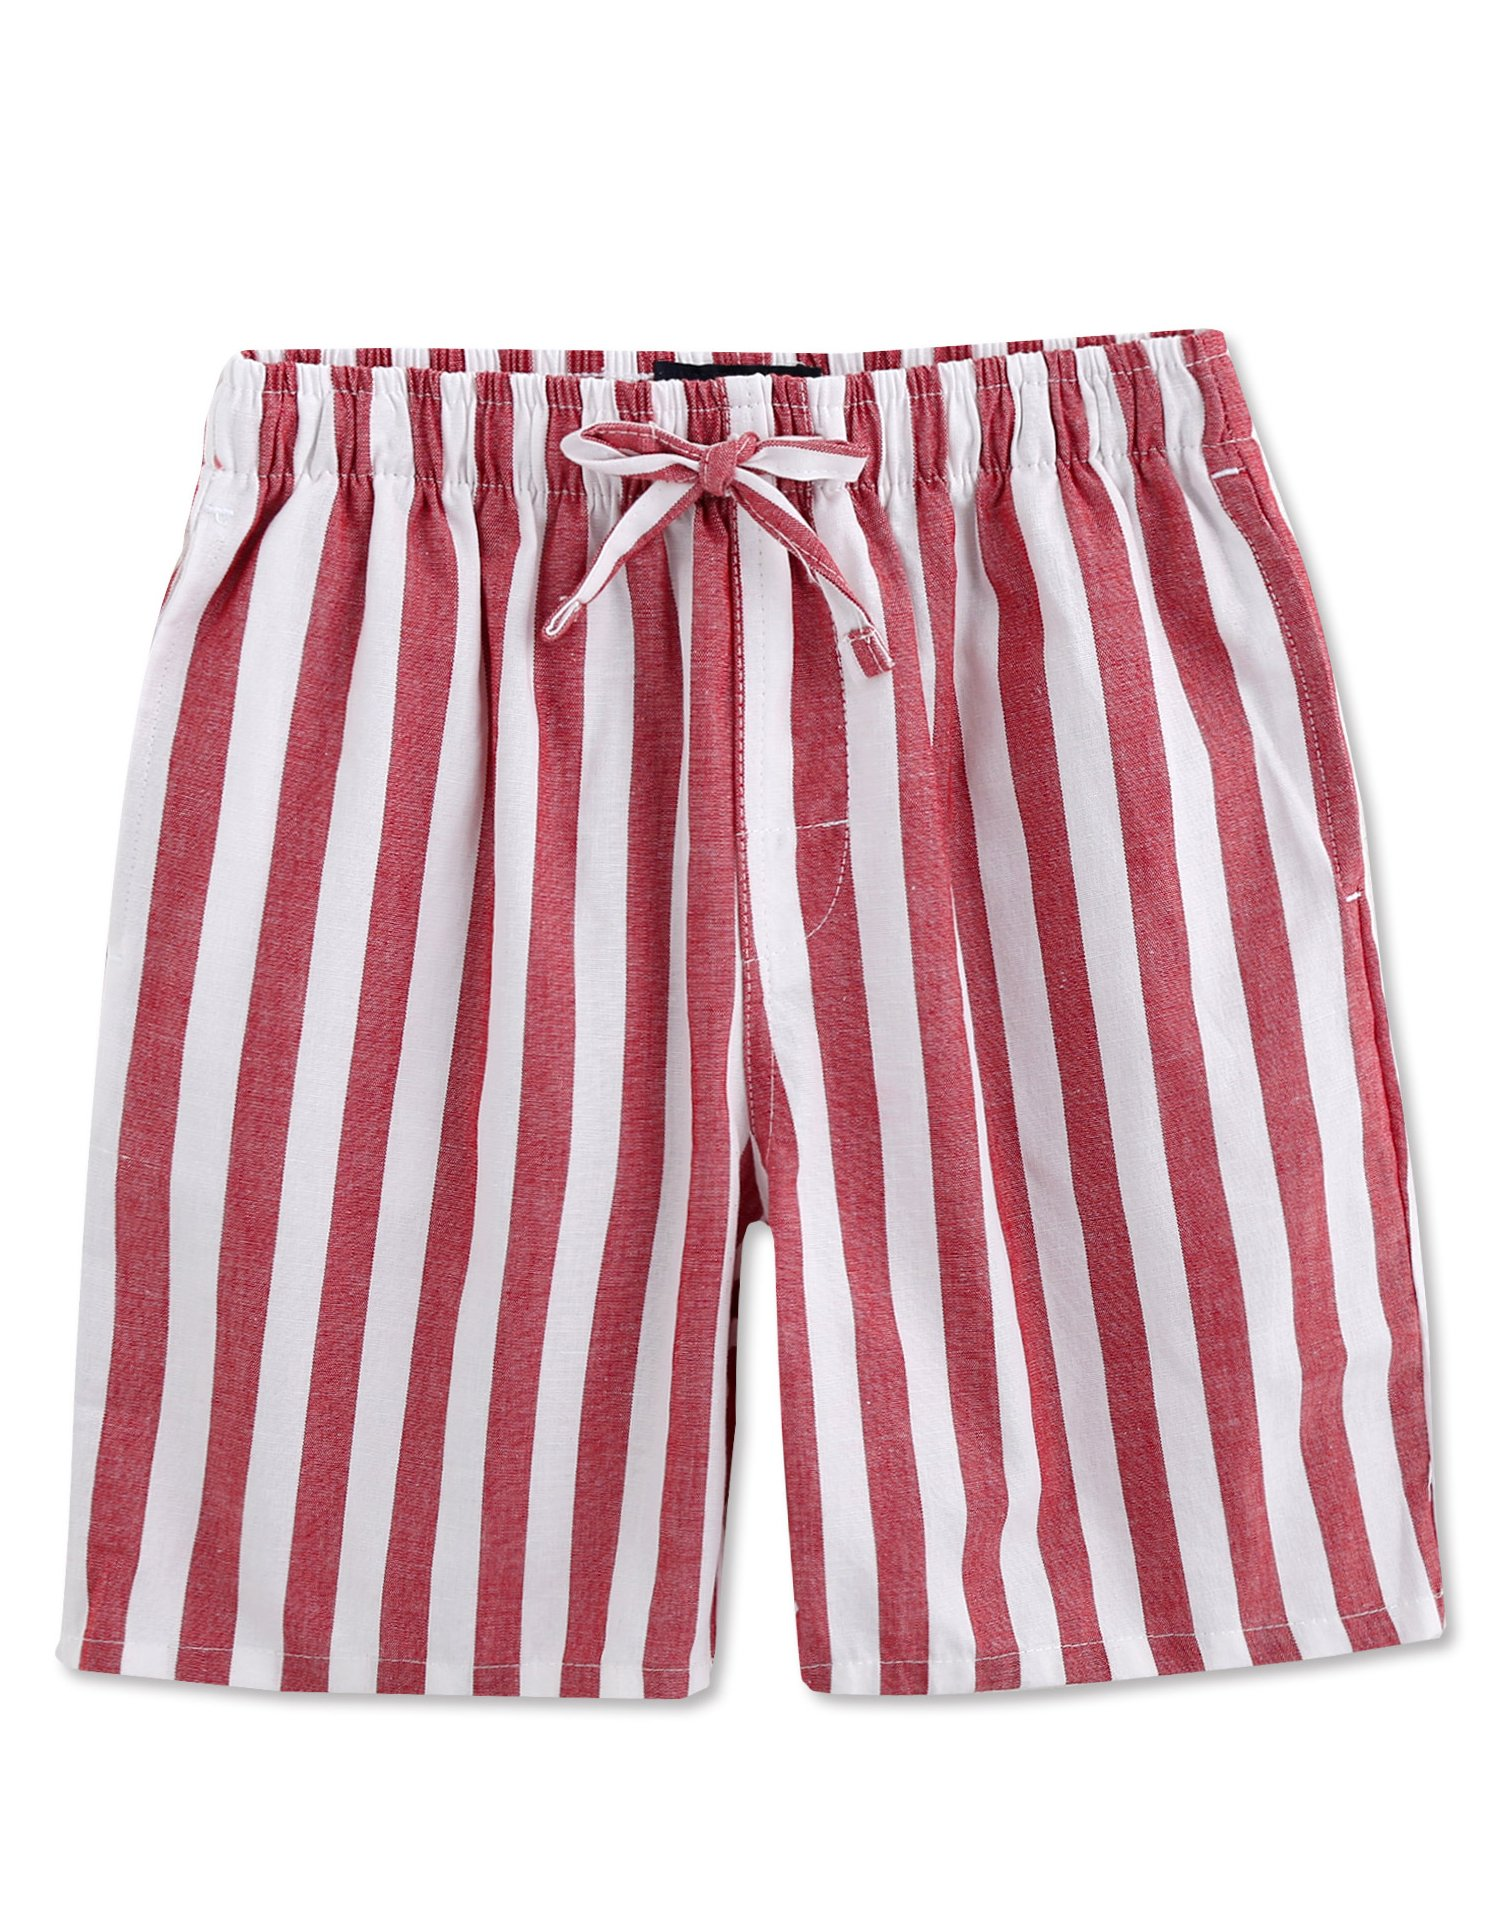 TINFL Boys Plaid Check Soft 100% Cotton Lounge Shorts BSP-09-Red-YXL